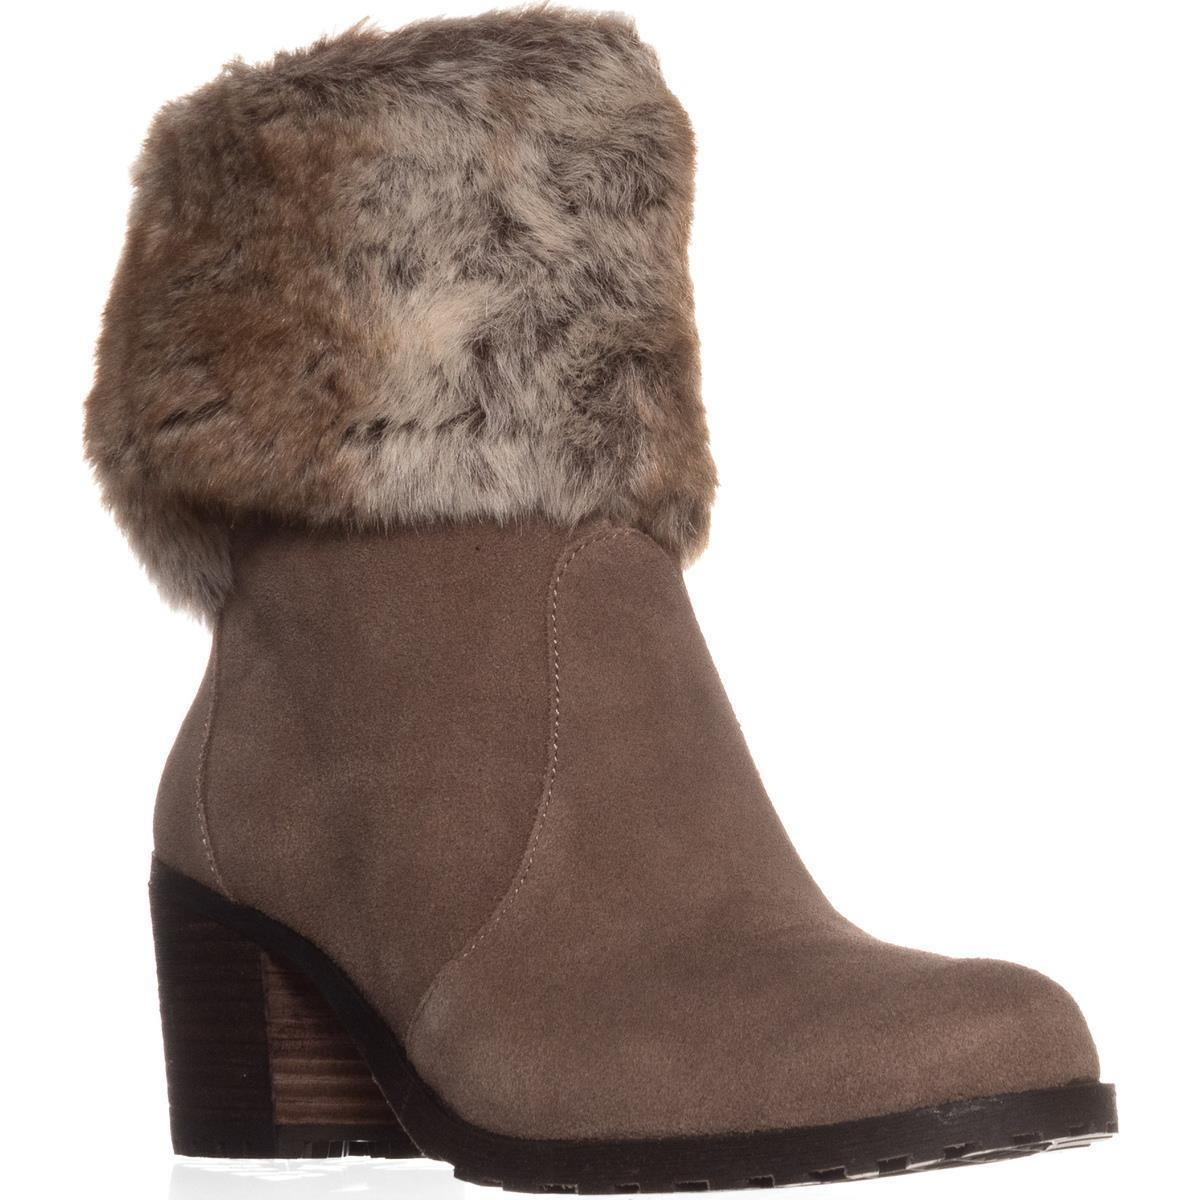 Womens Aerosoles Incognito Faux Fur Cuff Winter Ankle Boots, Taupe by Aerosoles